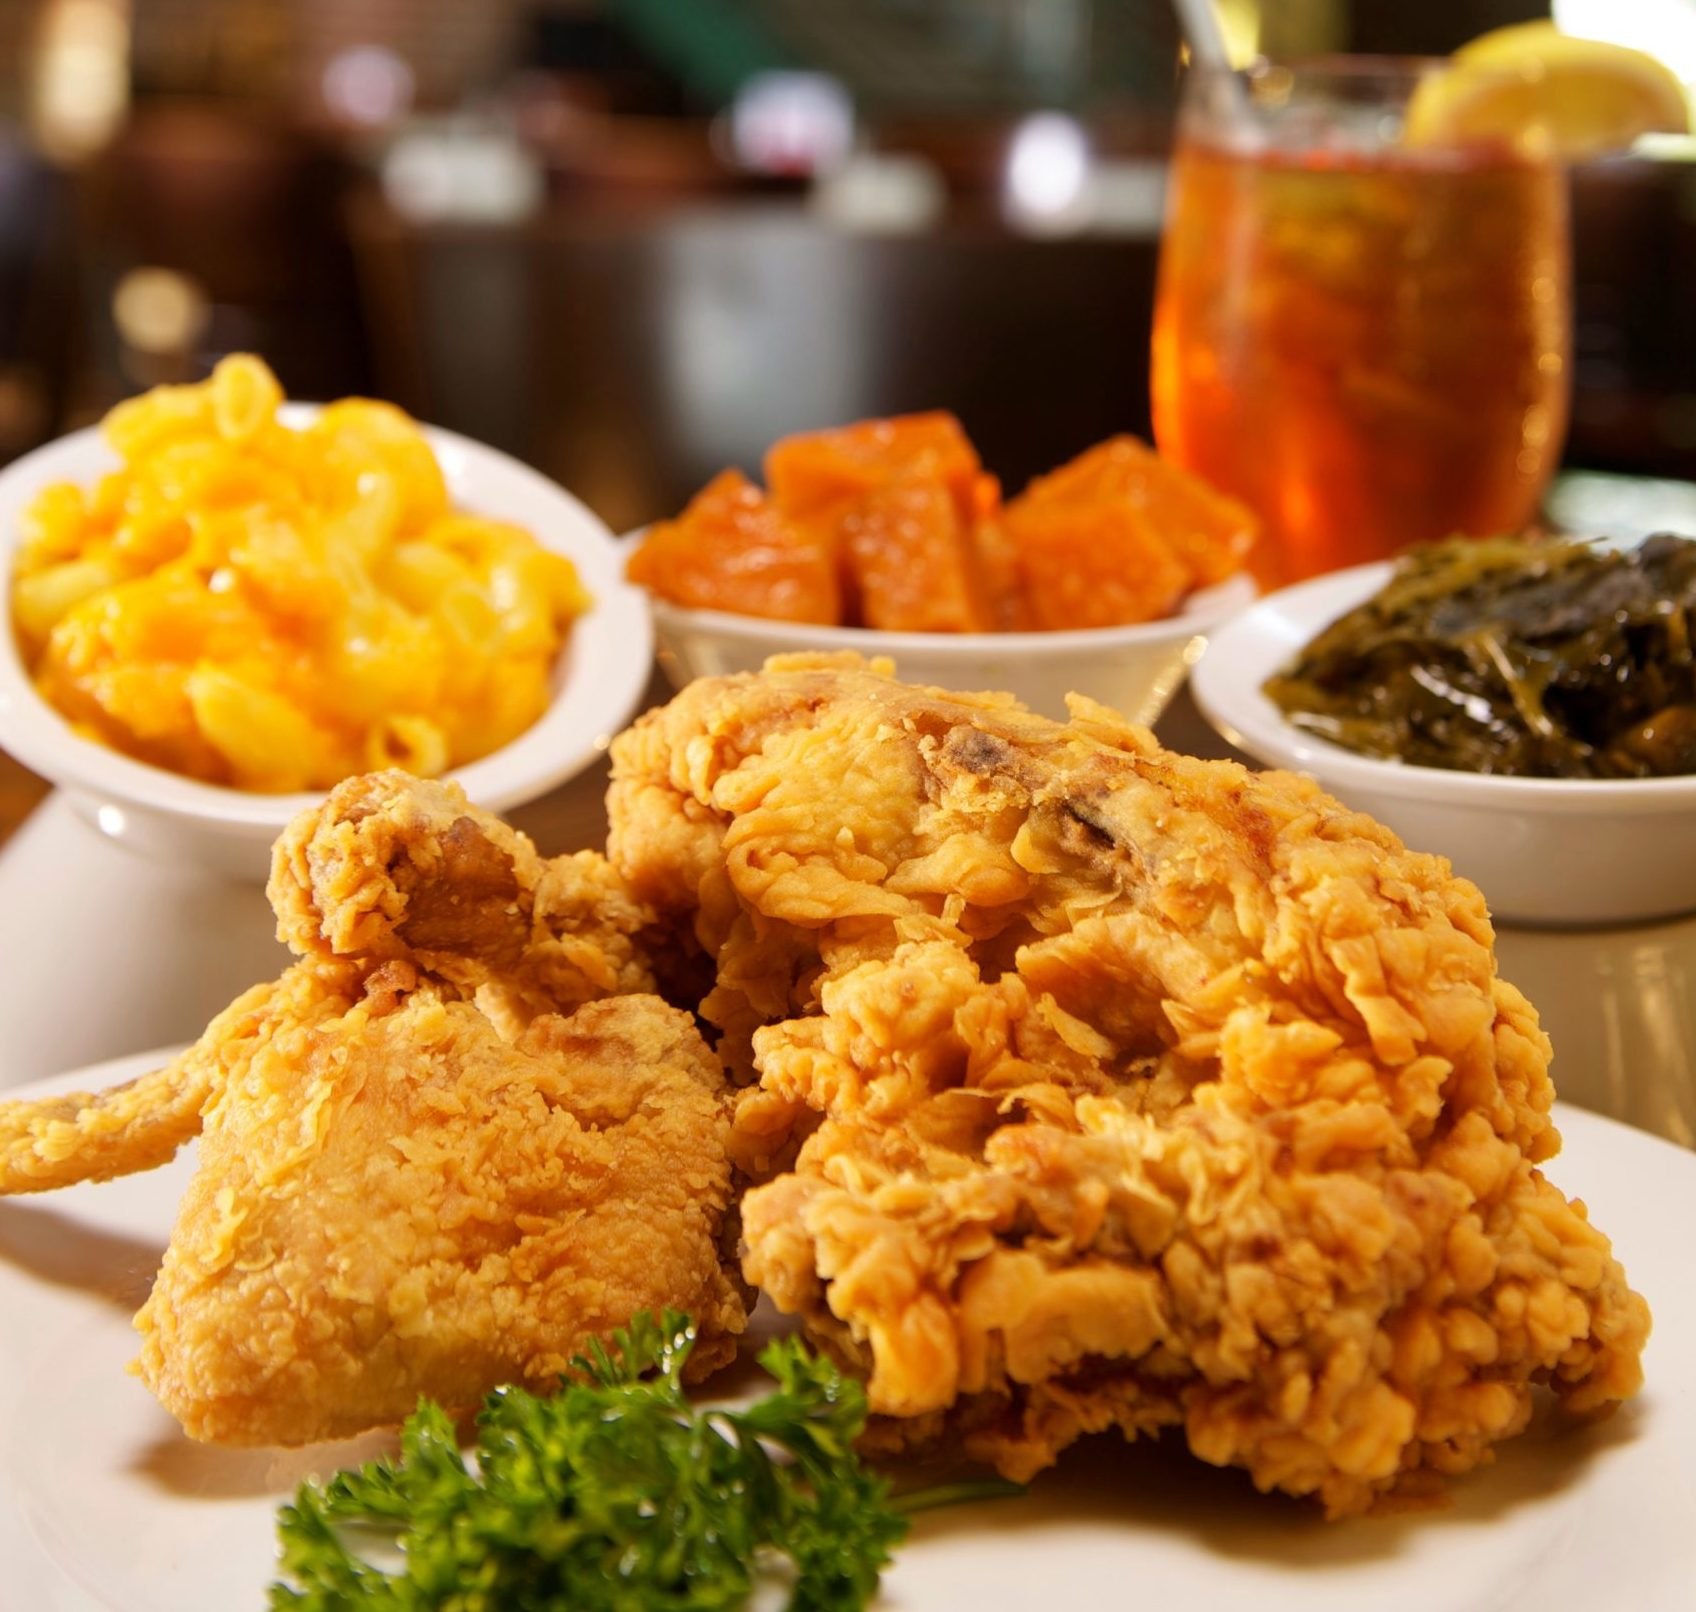 Paschal's famous fried chicken